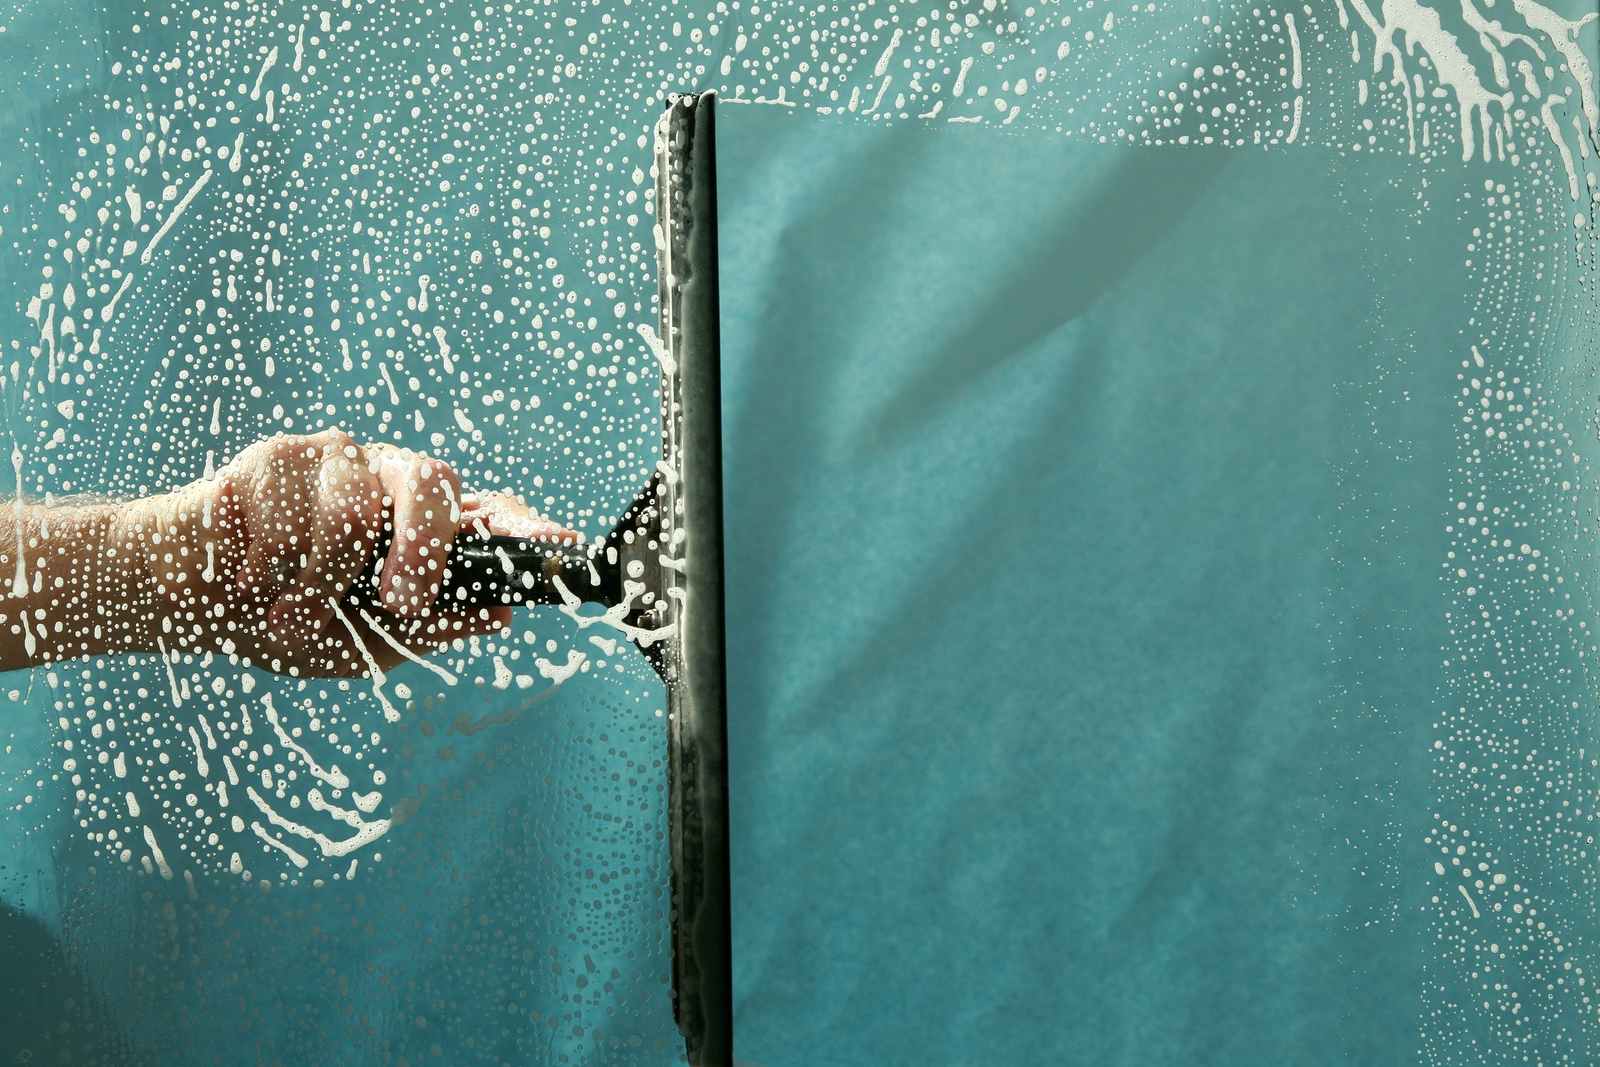 Commercial Window Cleaning - The Benefits are Crystal Clear